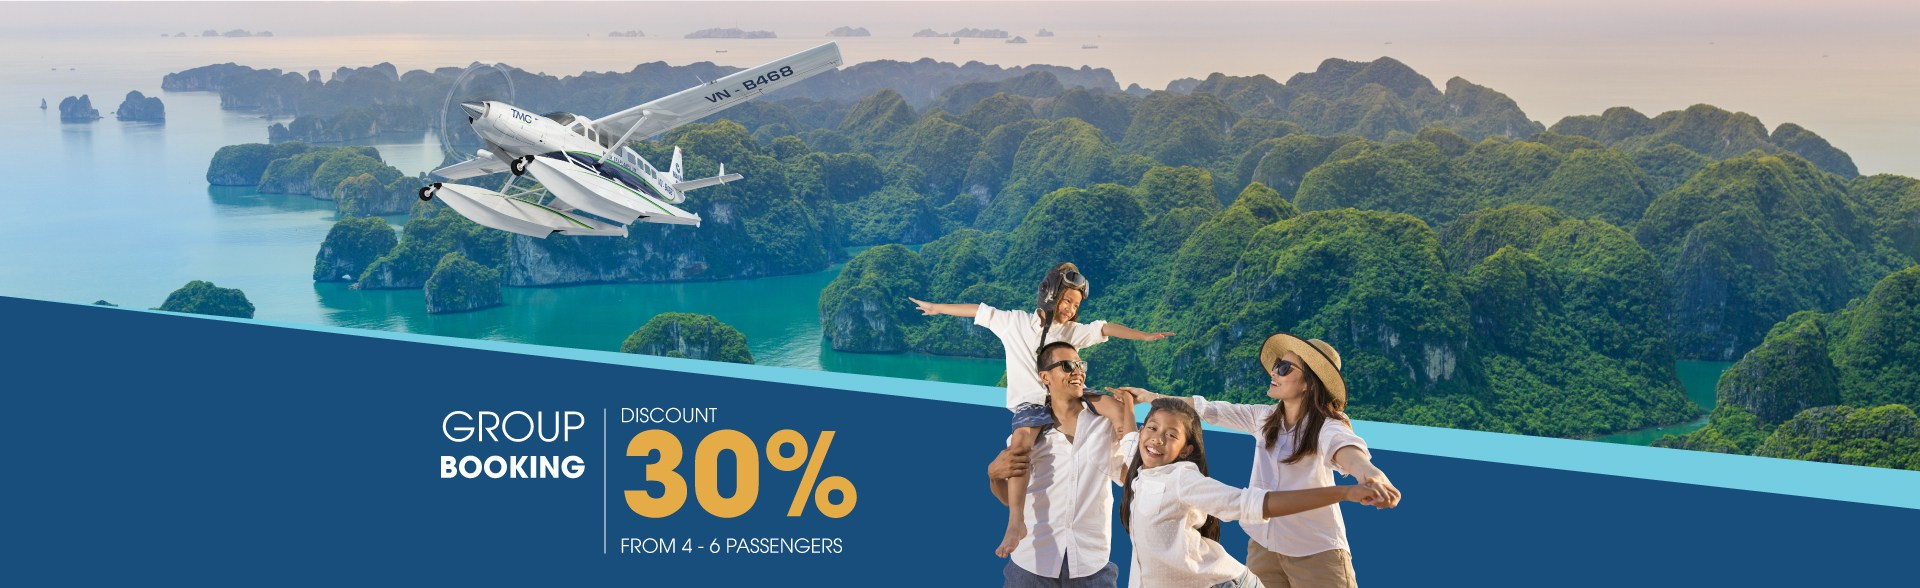 Group booking in Halong Bay - Discount 30%